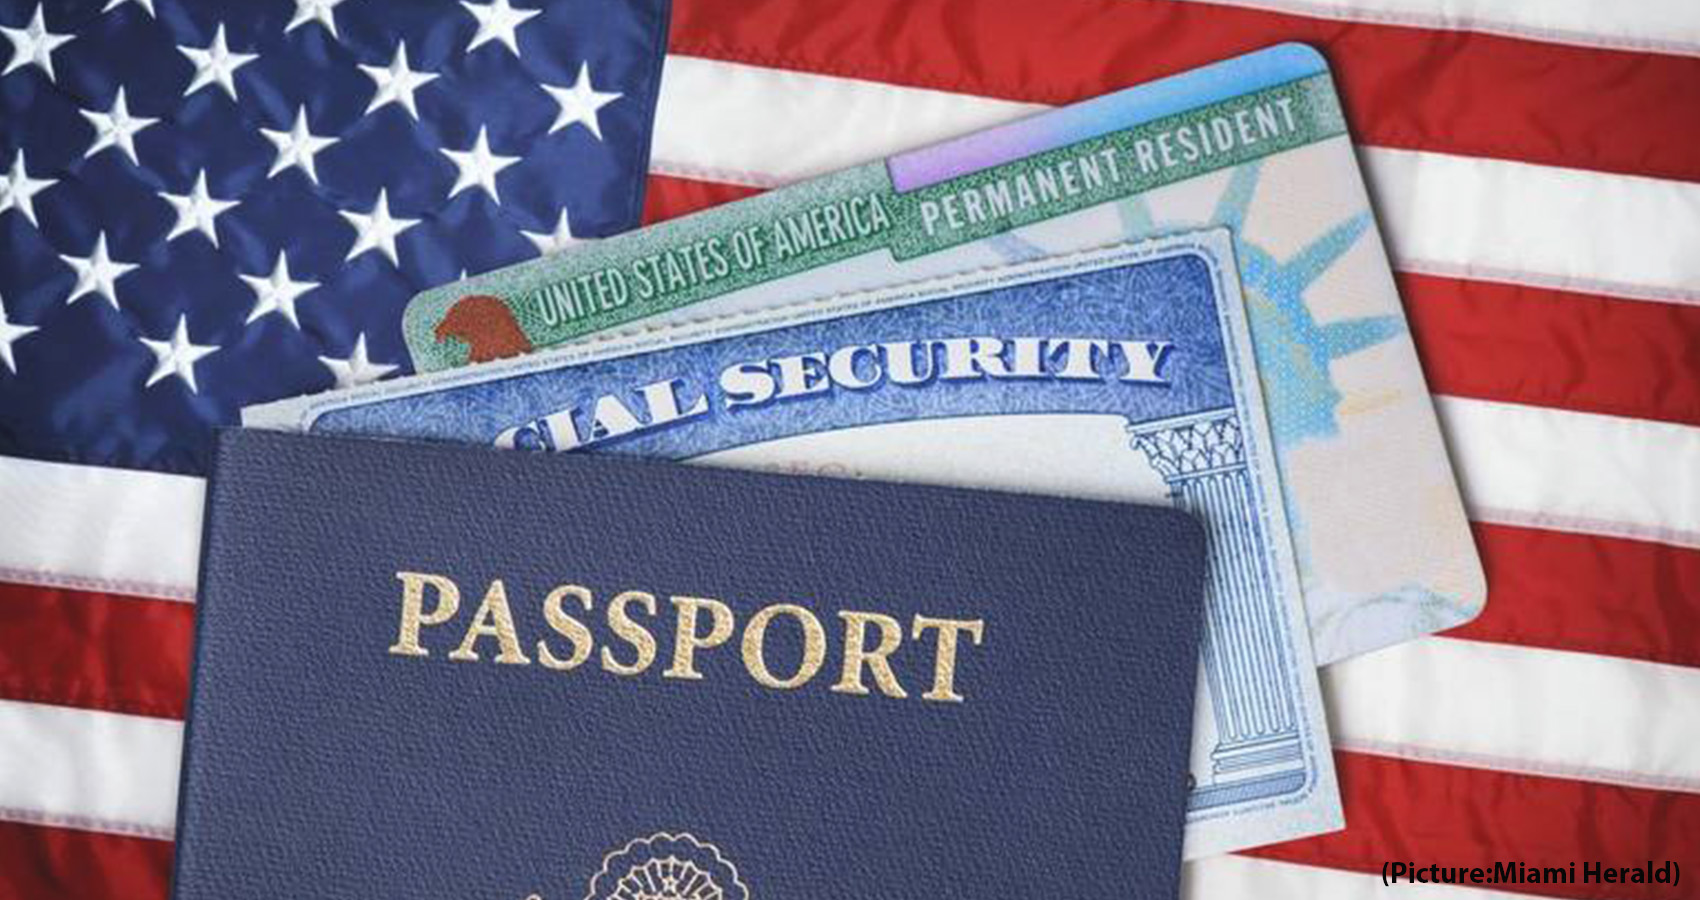 U.S. Passport Renewals Are Taking Months: If Your Us Passport Expires Within The Next Year, You Need To Get Moving